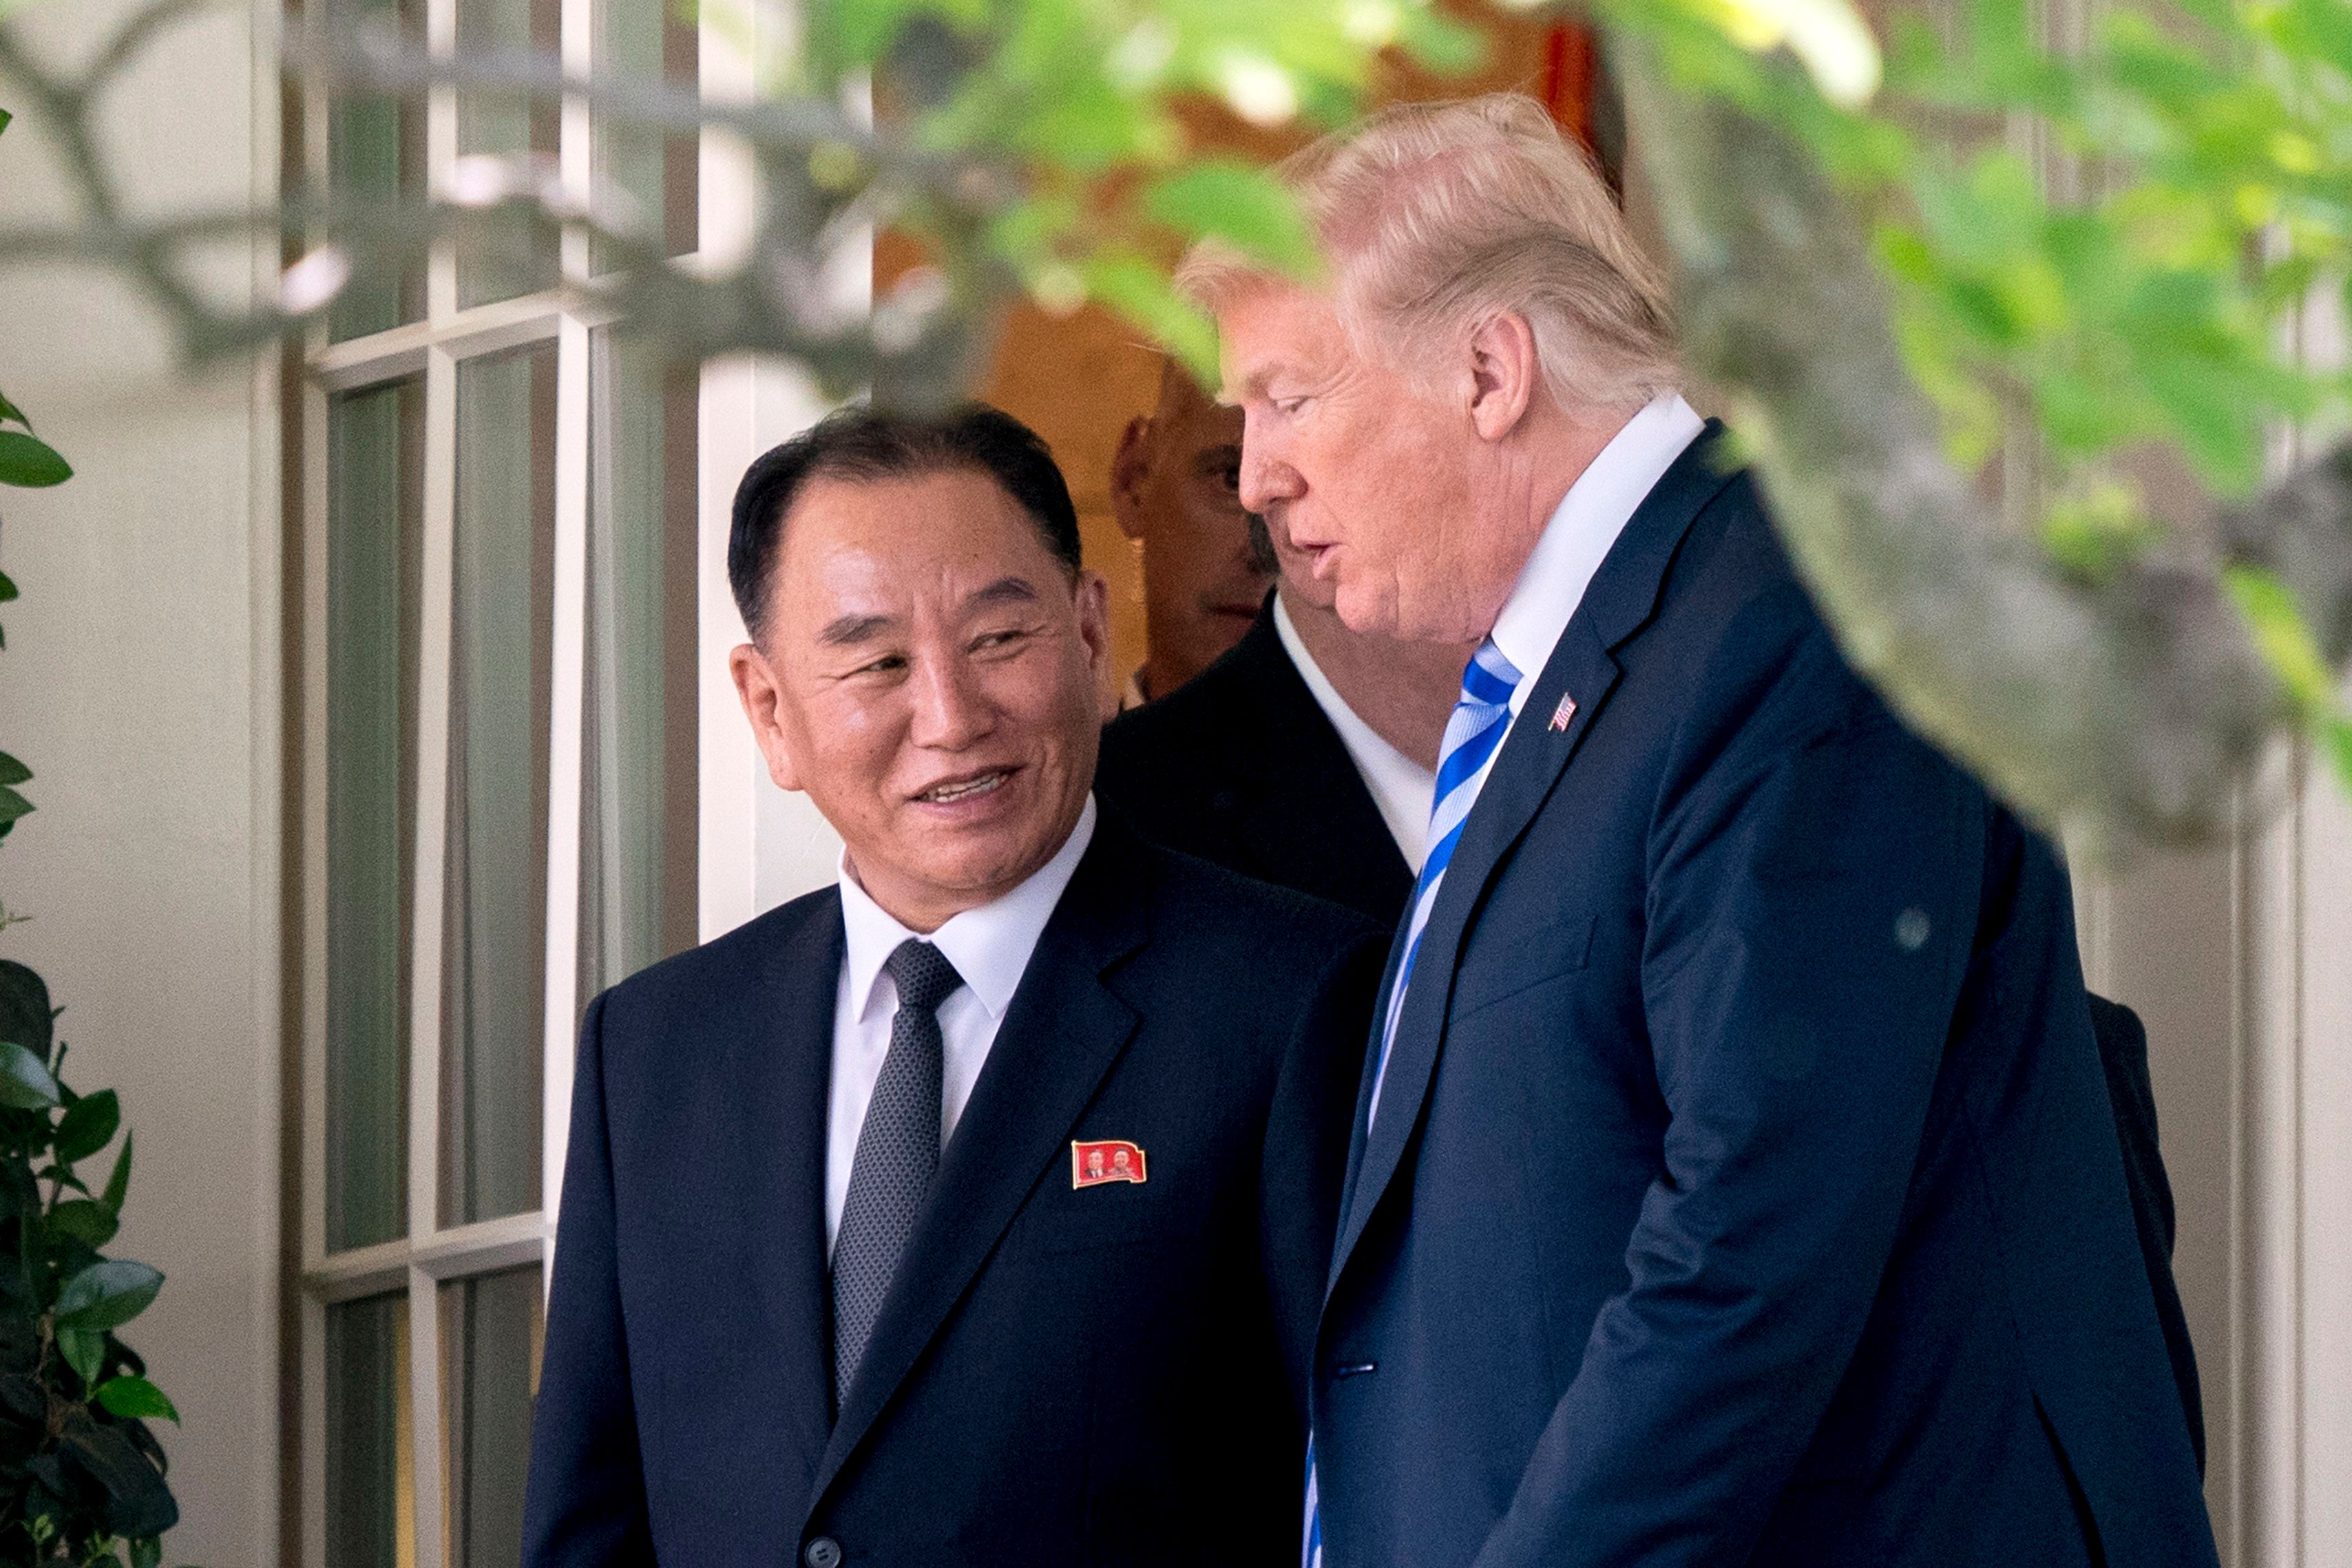 President Donald Trump talks with Kim Yong Chol, one of Kim Jong Un's closest aides, at the White House in Washington, DC on June 1, 2018.